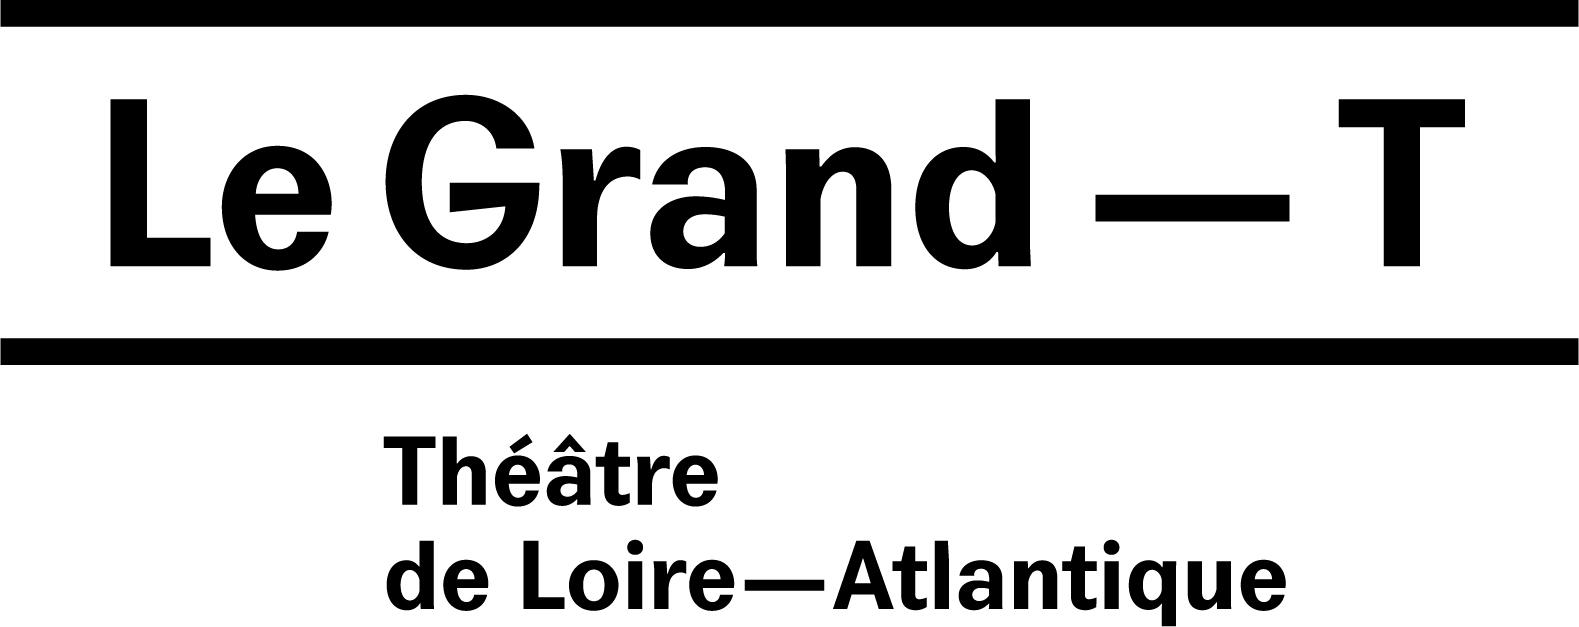 Technician, front of house and permanent staff scheduling at Grand T - Théâtre de Loire-Atlantique, in Nantes